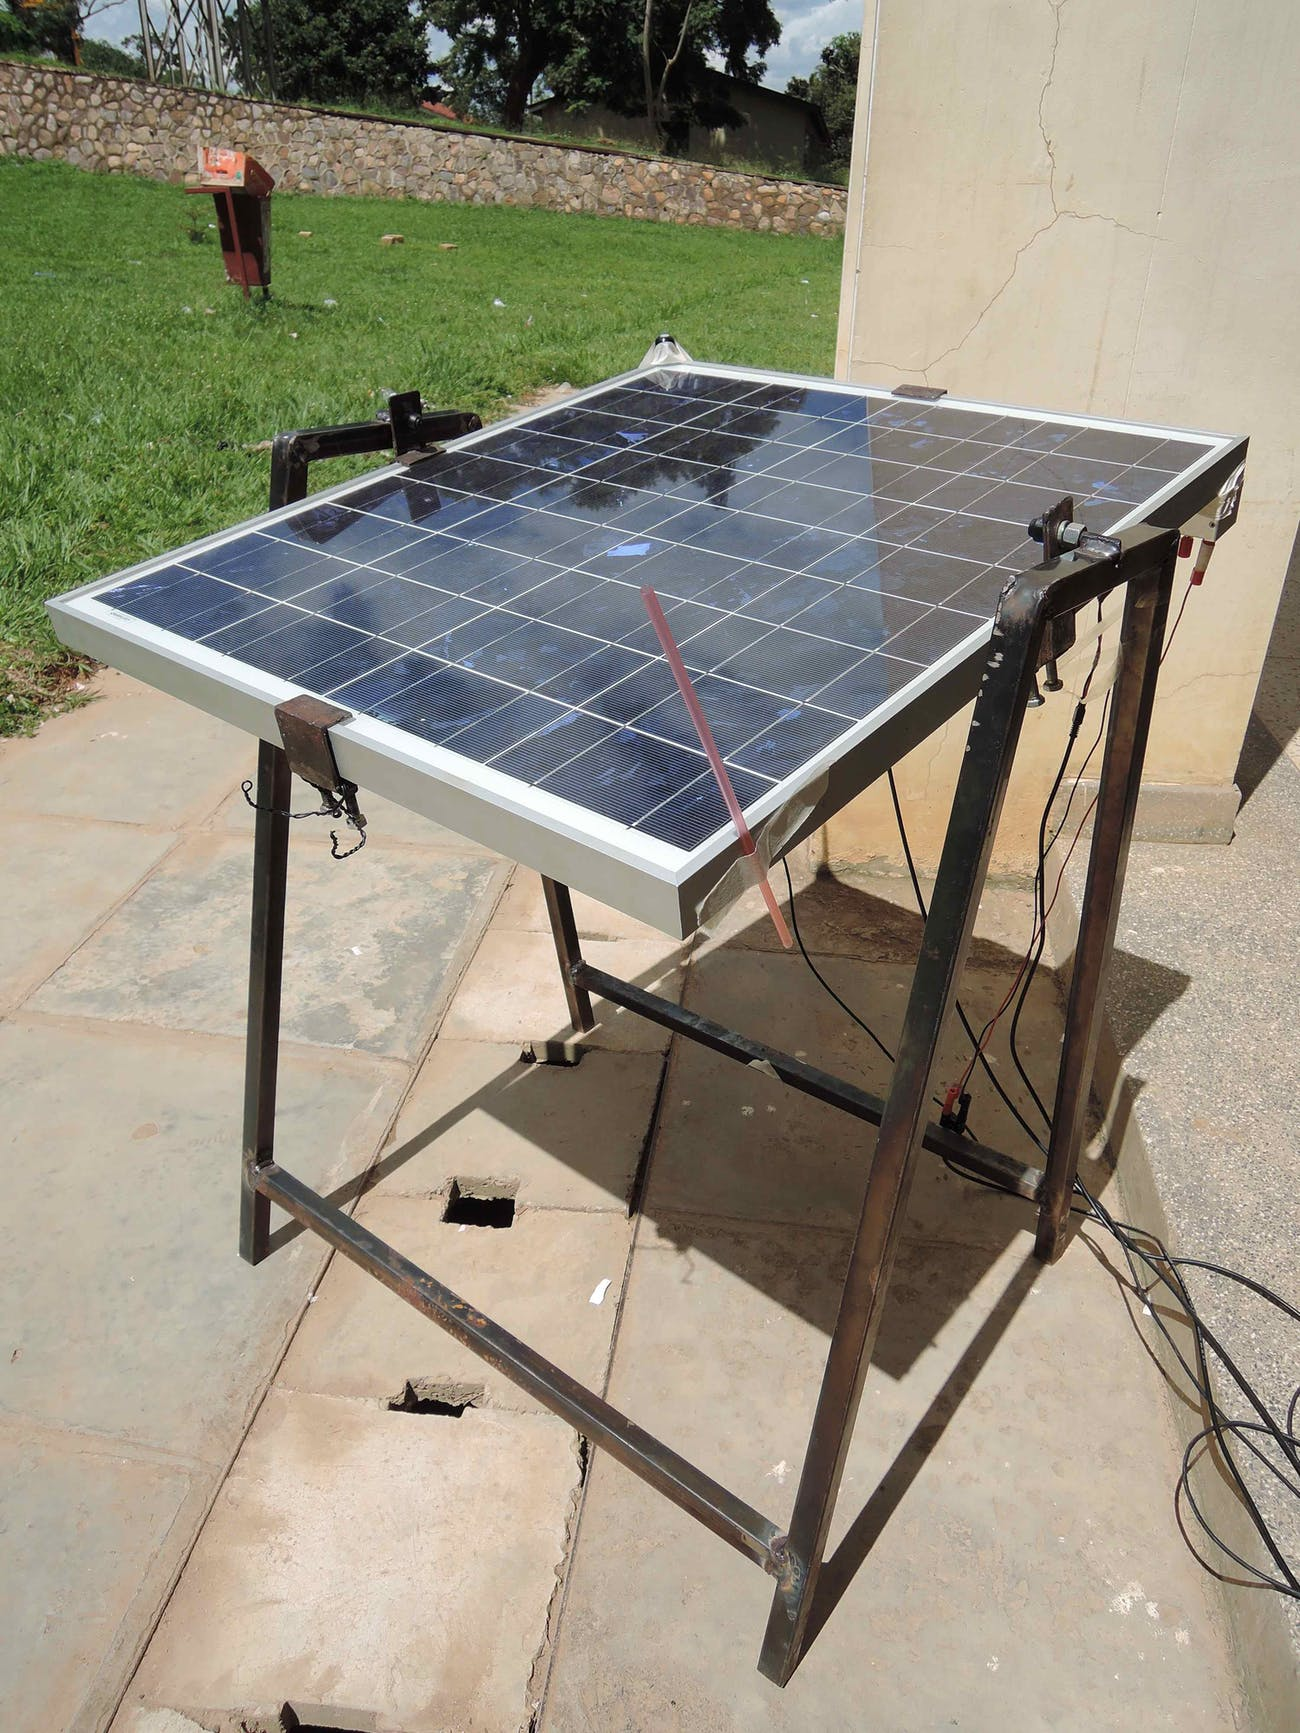 Solar Energy: Rotating Solar Panels Can Increase Efficiency